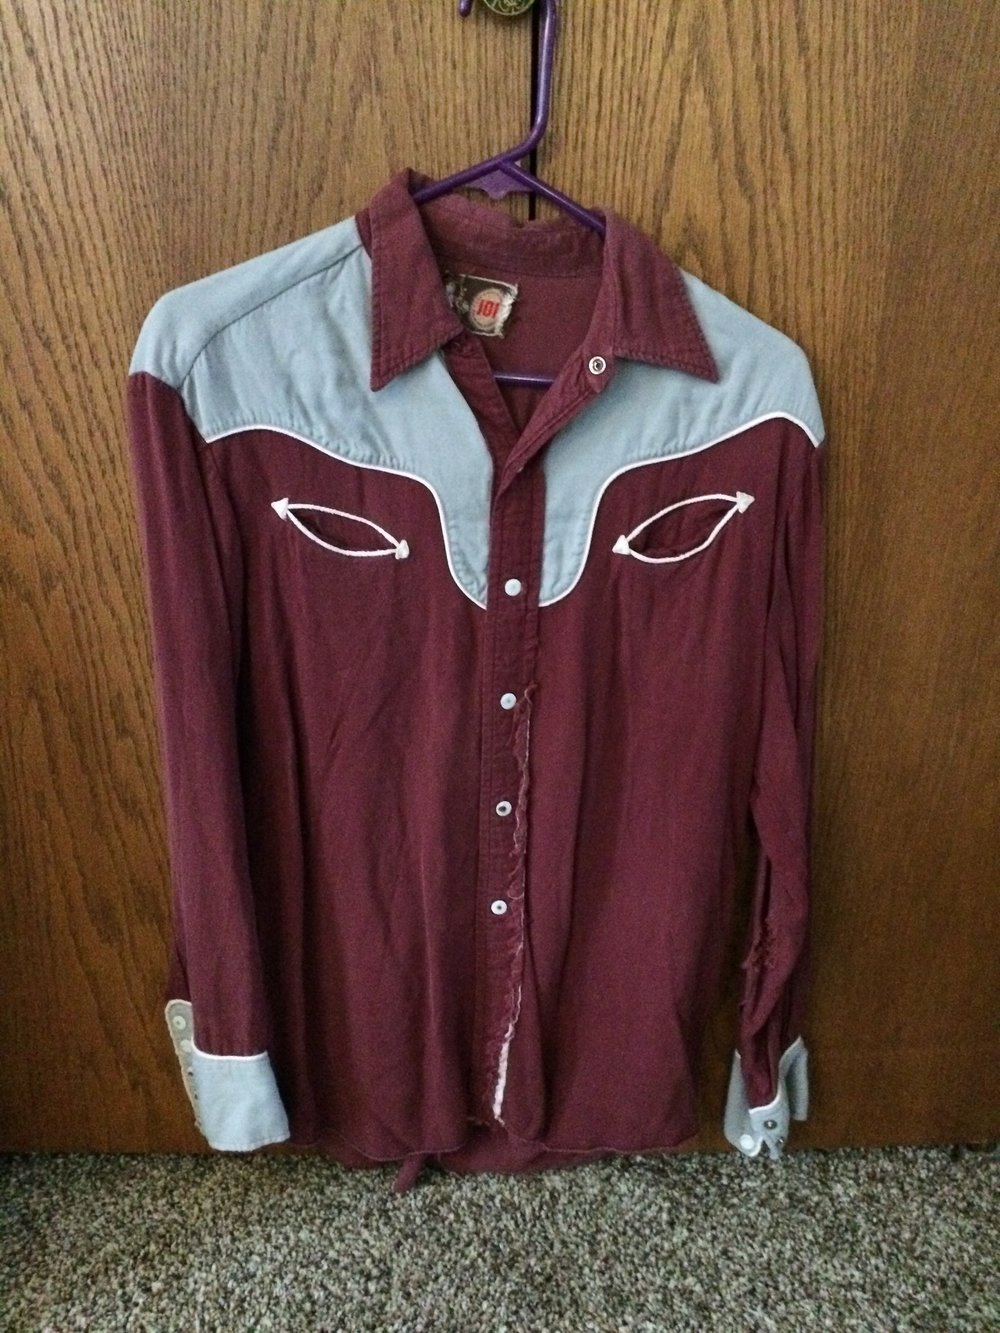 The Cowboy Shirt of Ronnie Owens